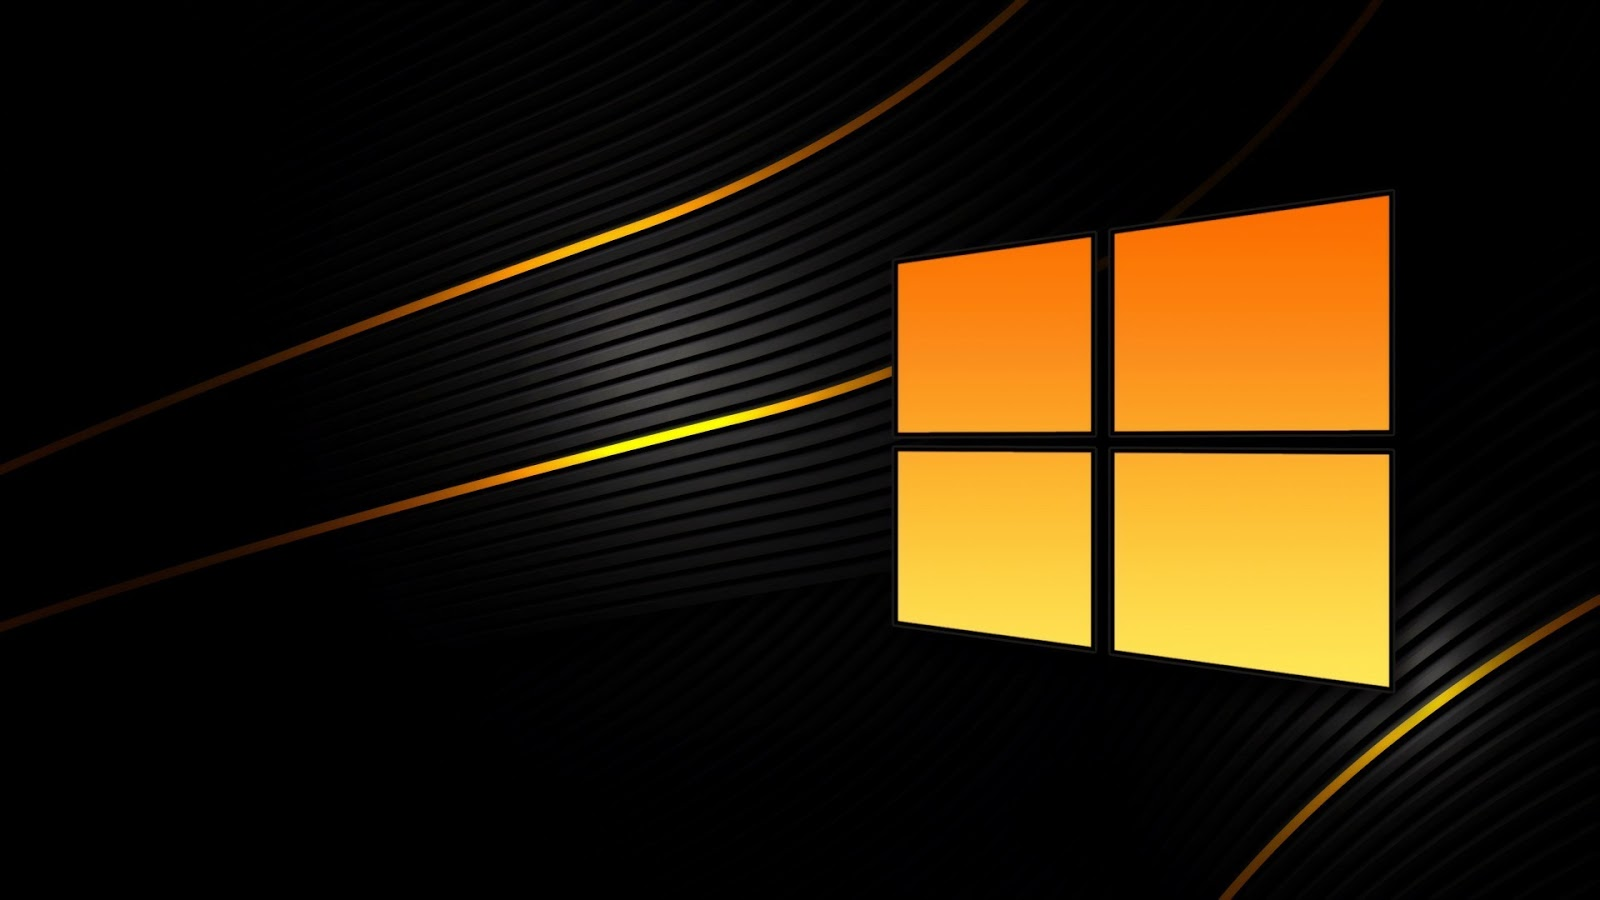 Wallpaper Hd Windows 10 Logo